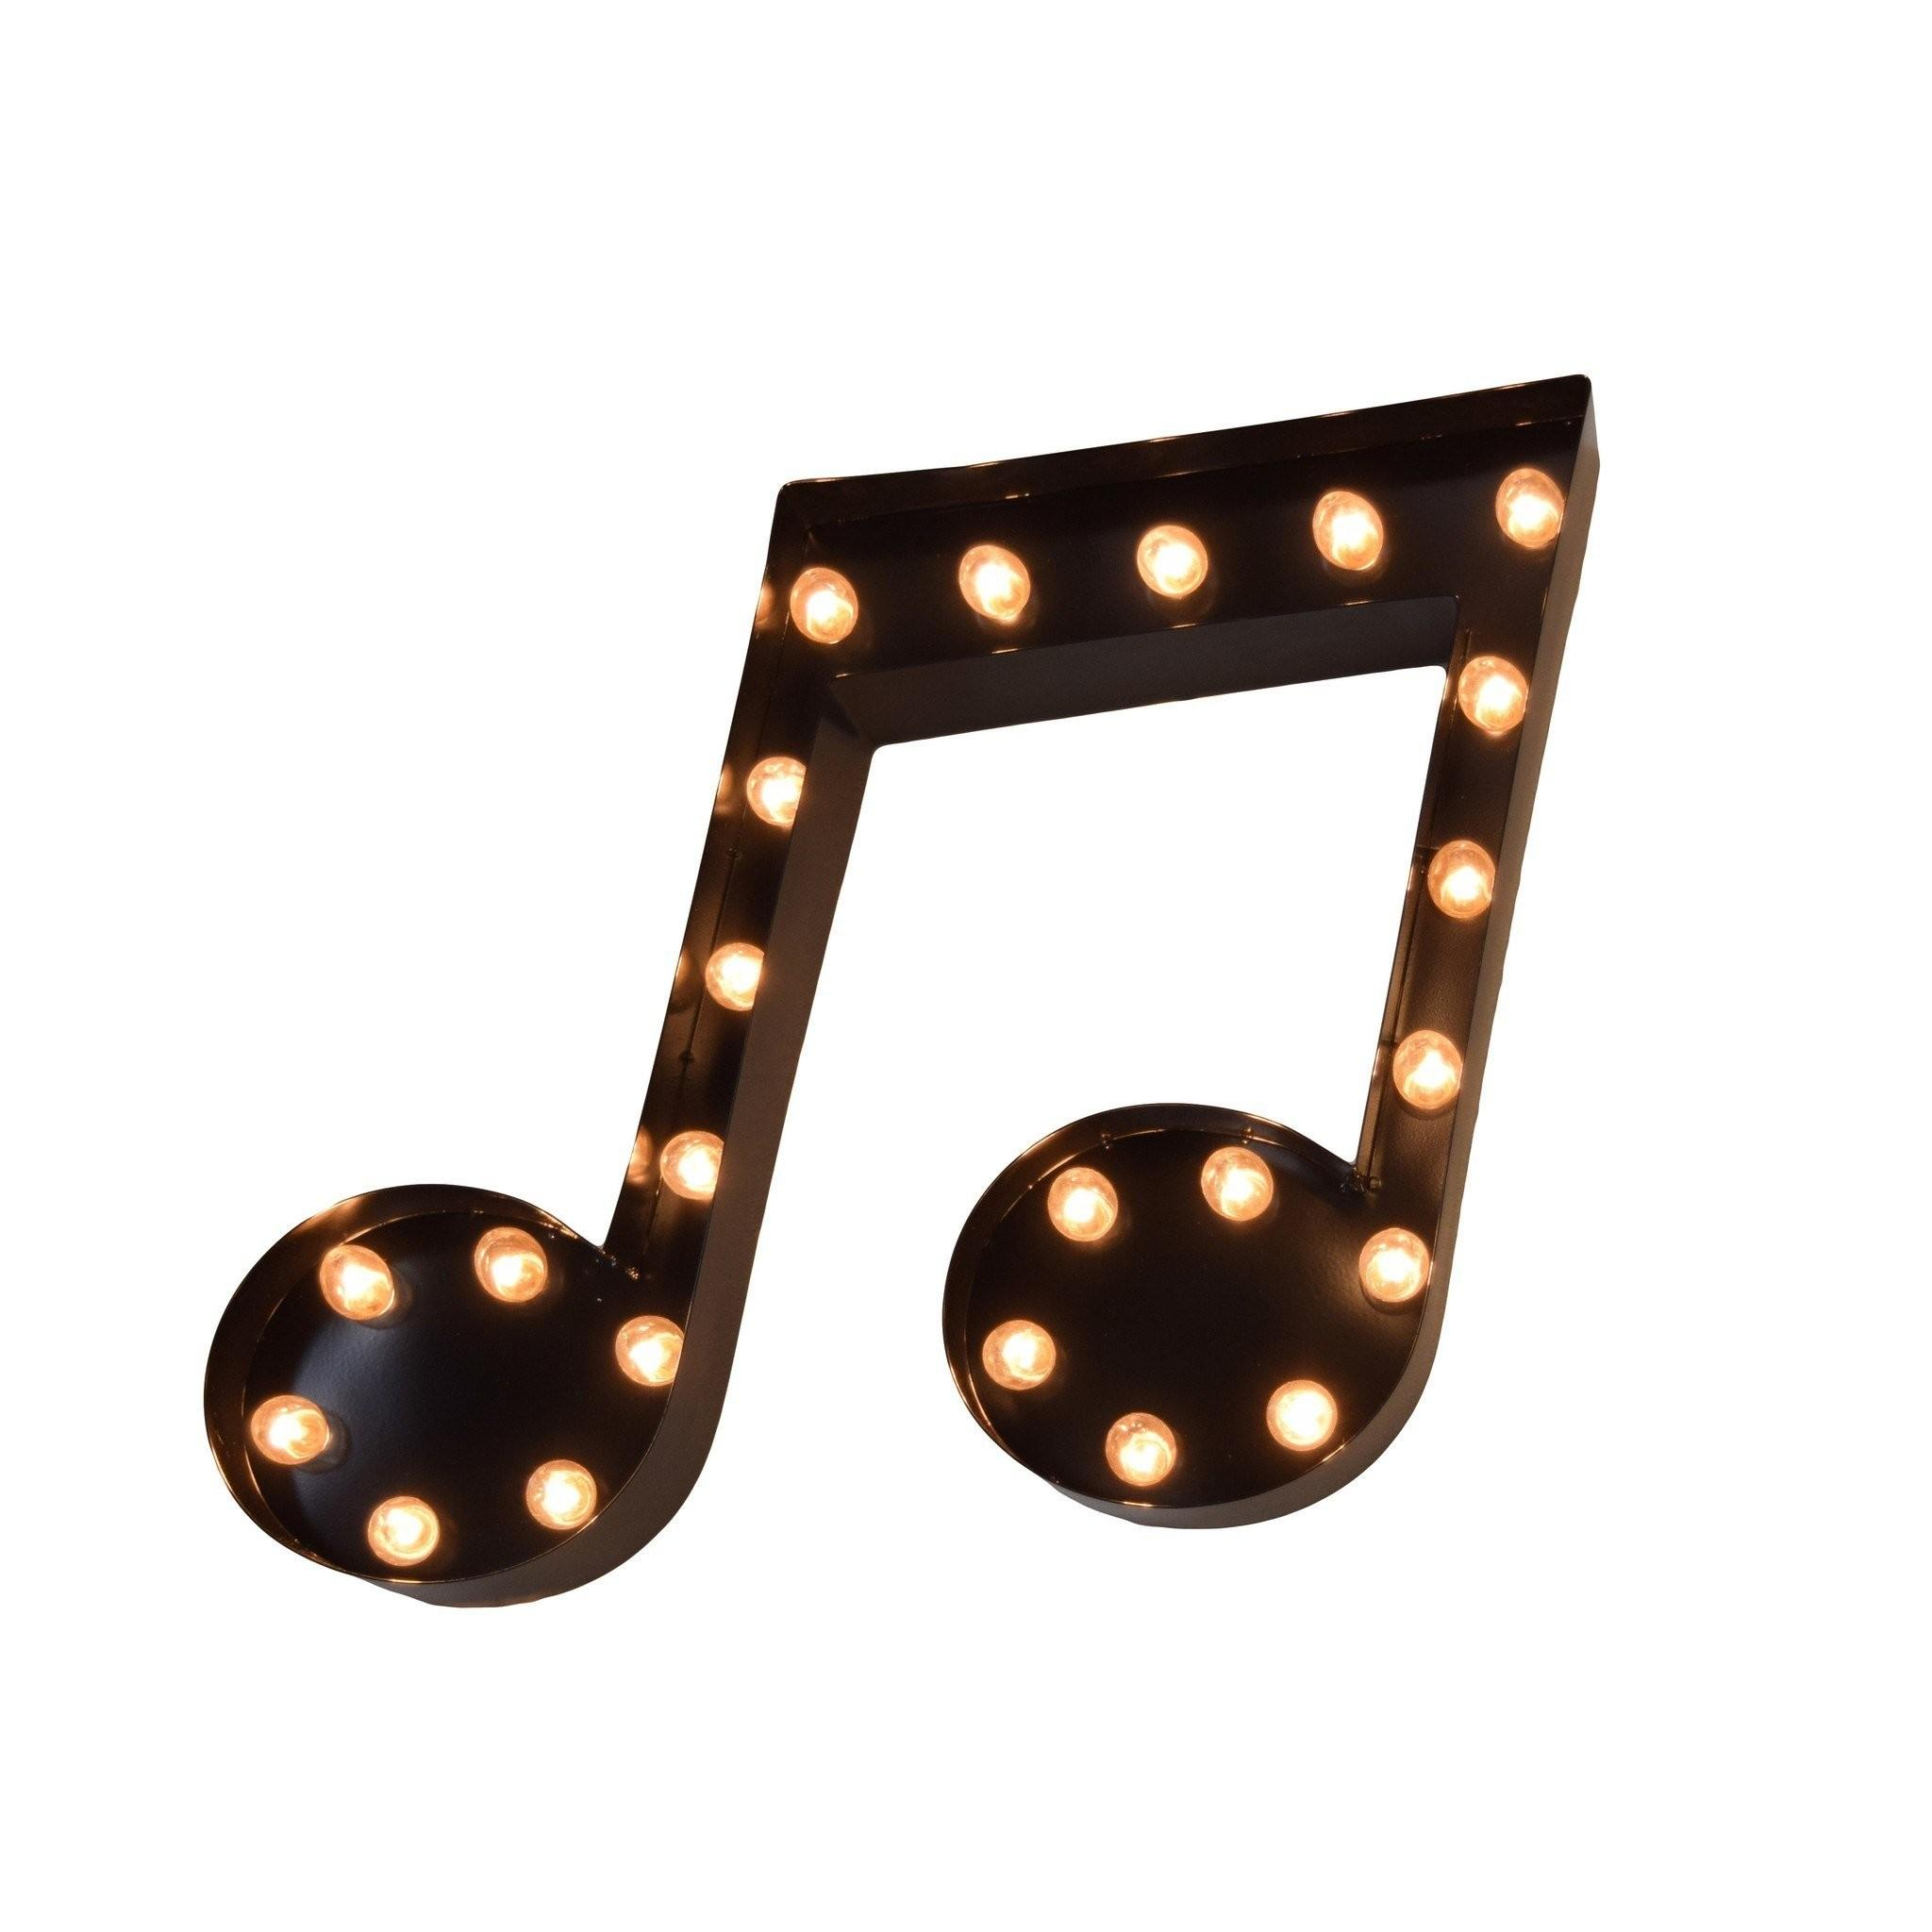 Music Note Vintage Marquee Lights Sign Black Finish